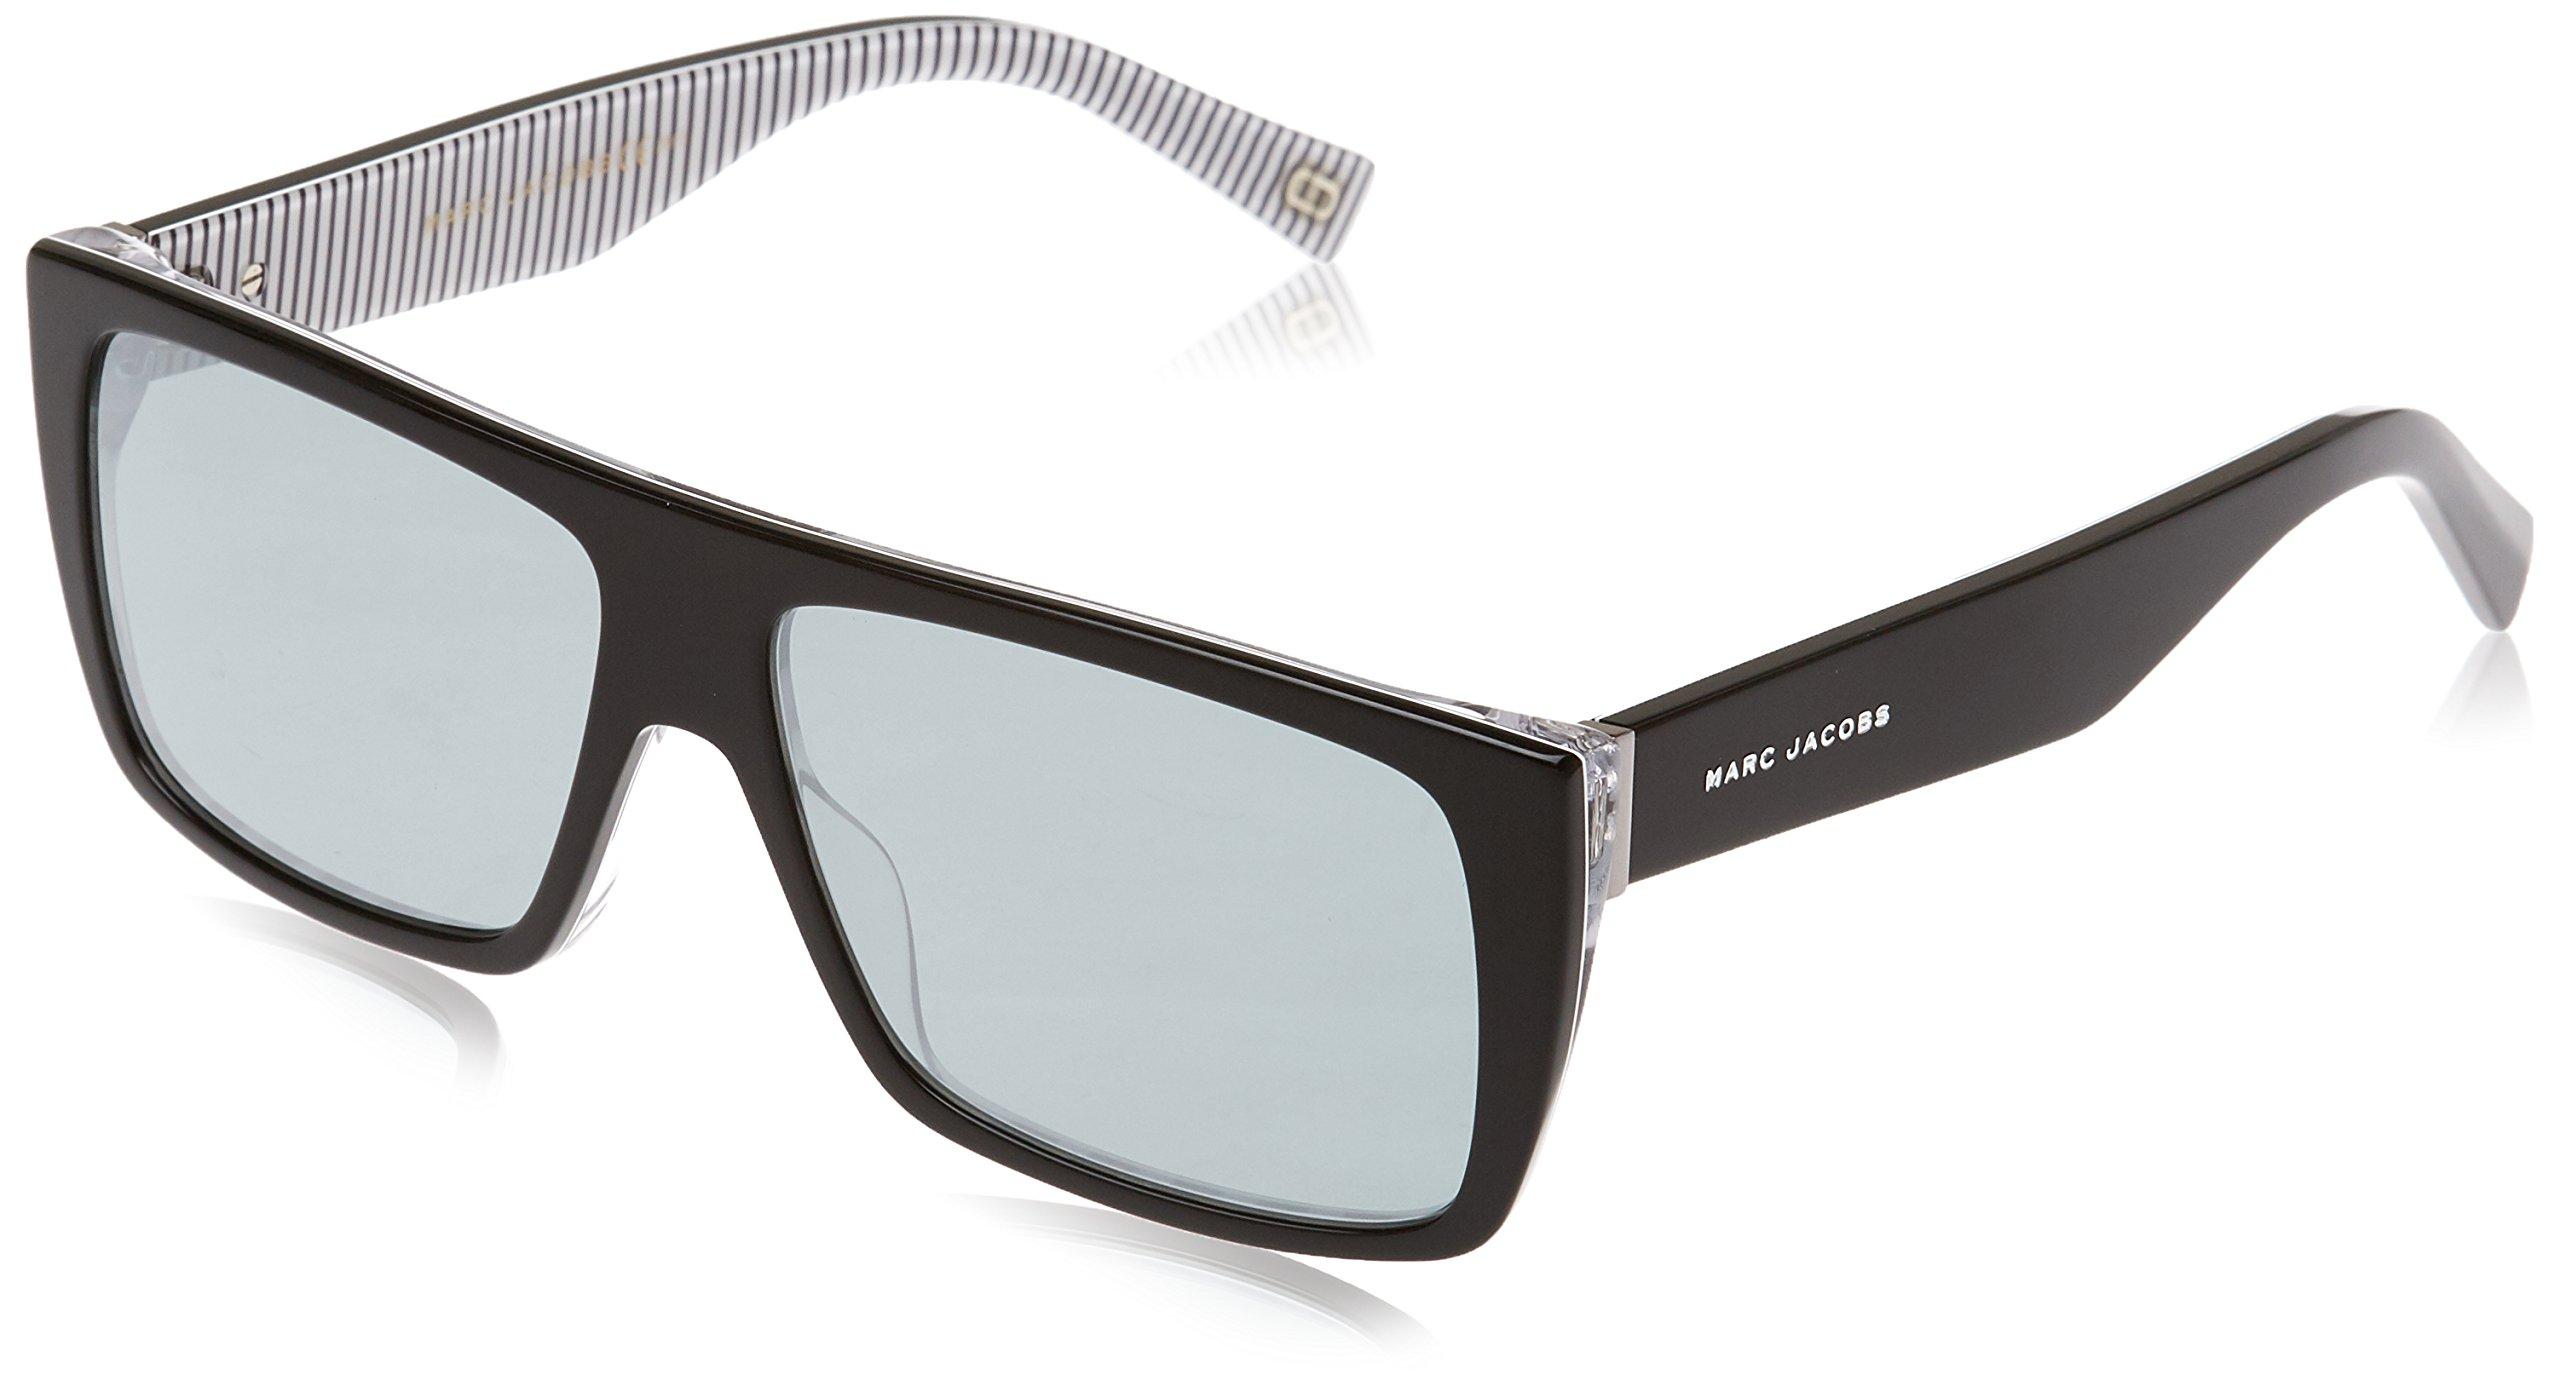 Marc Jacobs Marc096s Rectangular Sunglasses, Str Blck, 57 mm